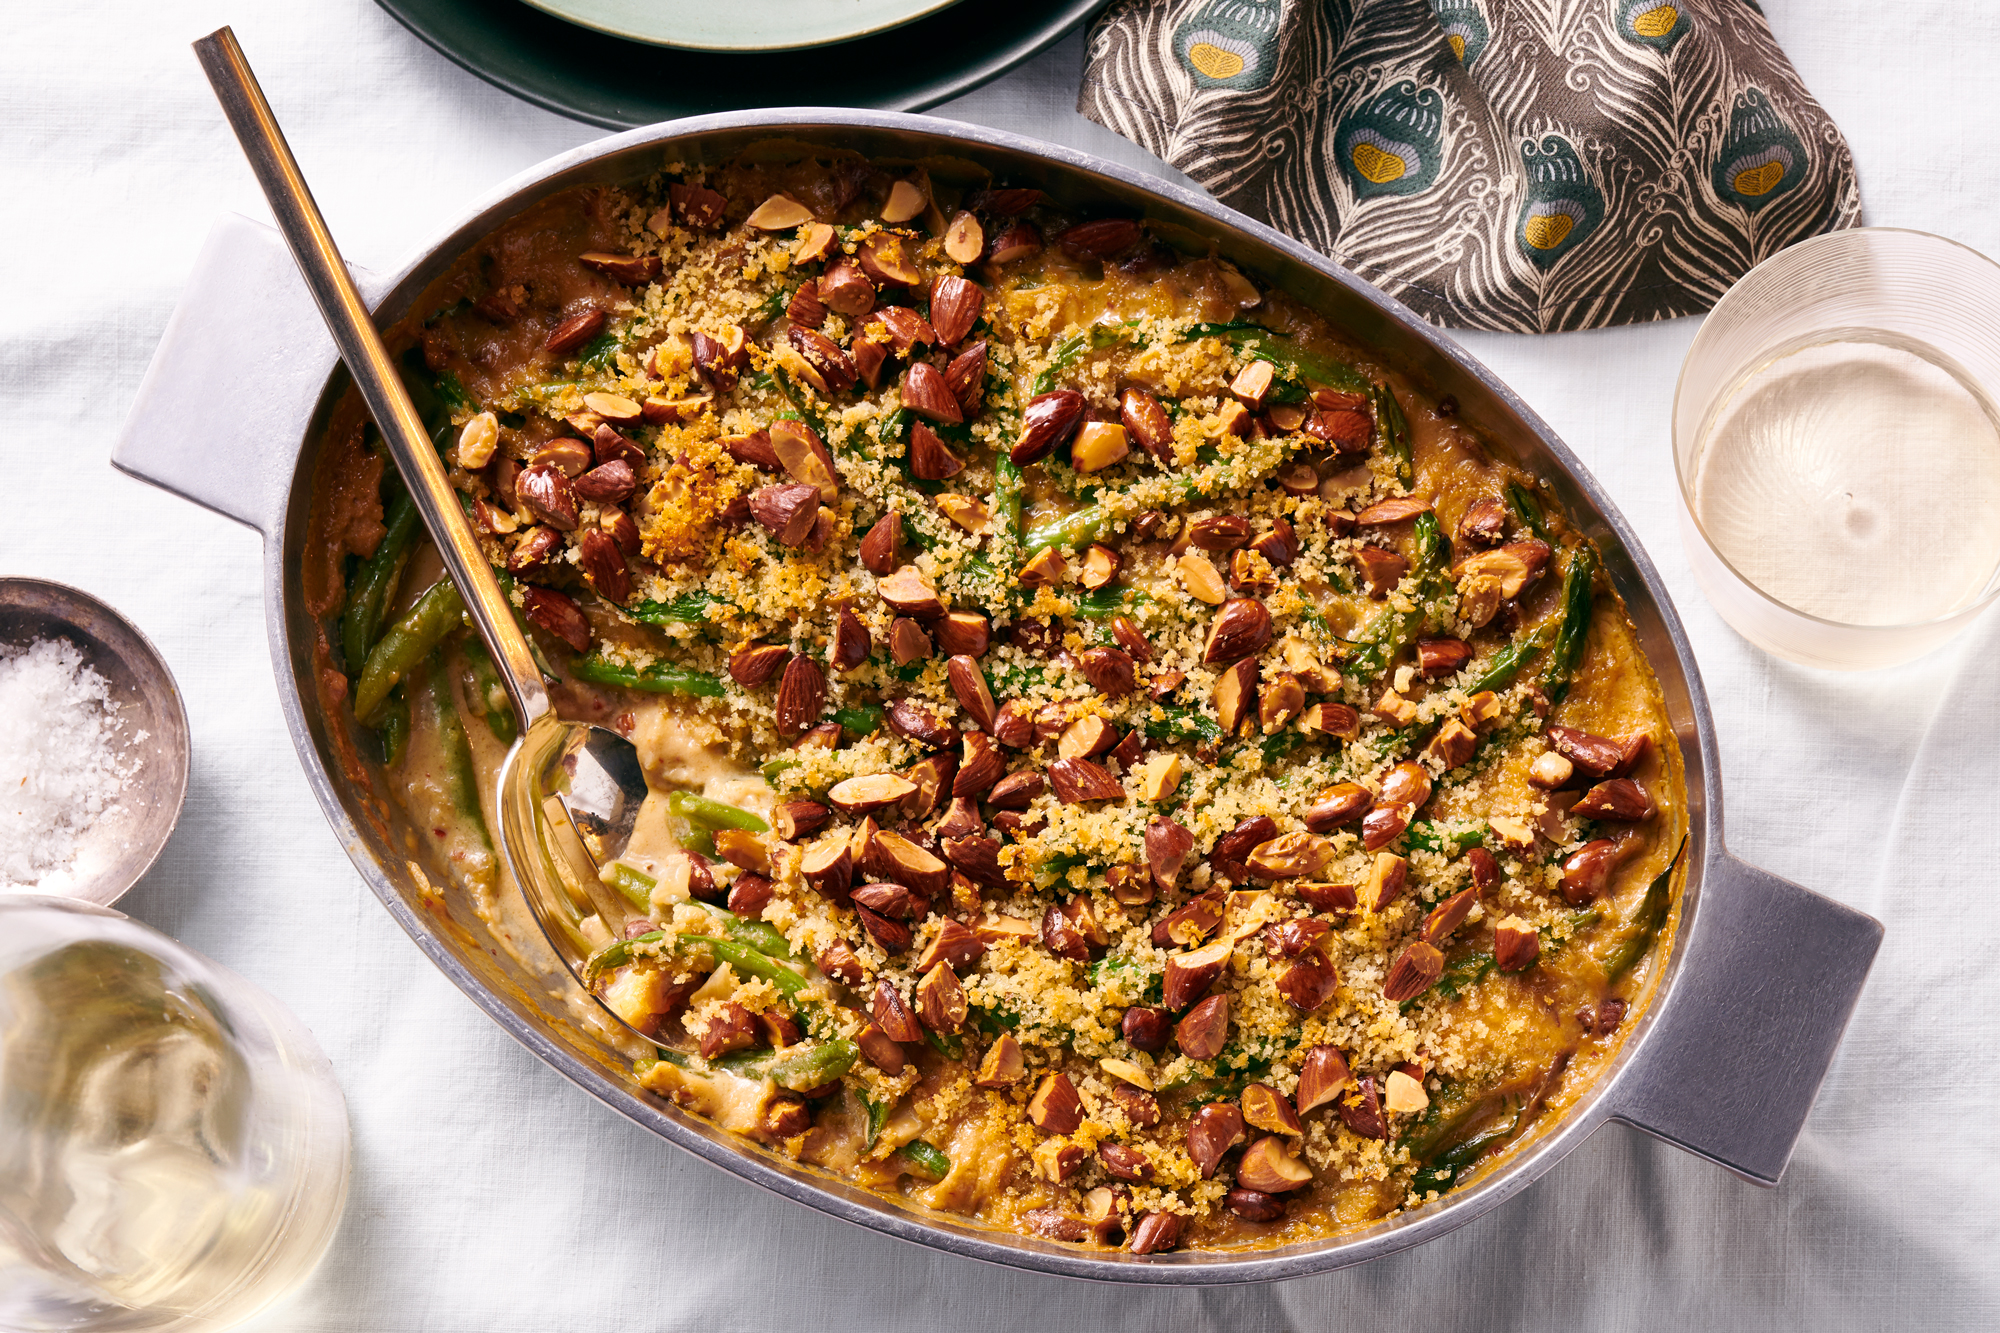 Green bean casserole with almost burnt almonds